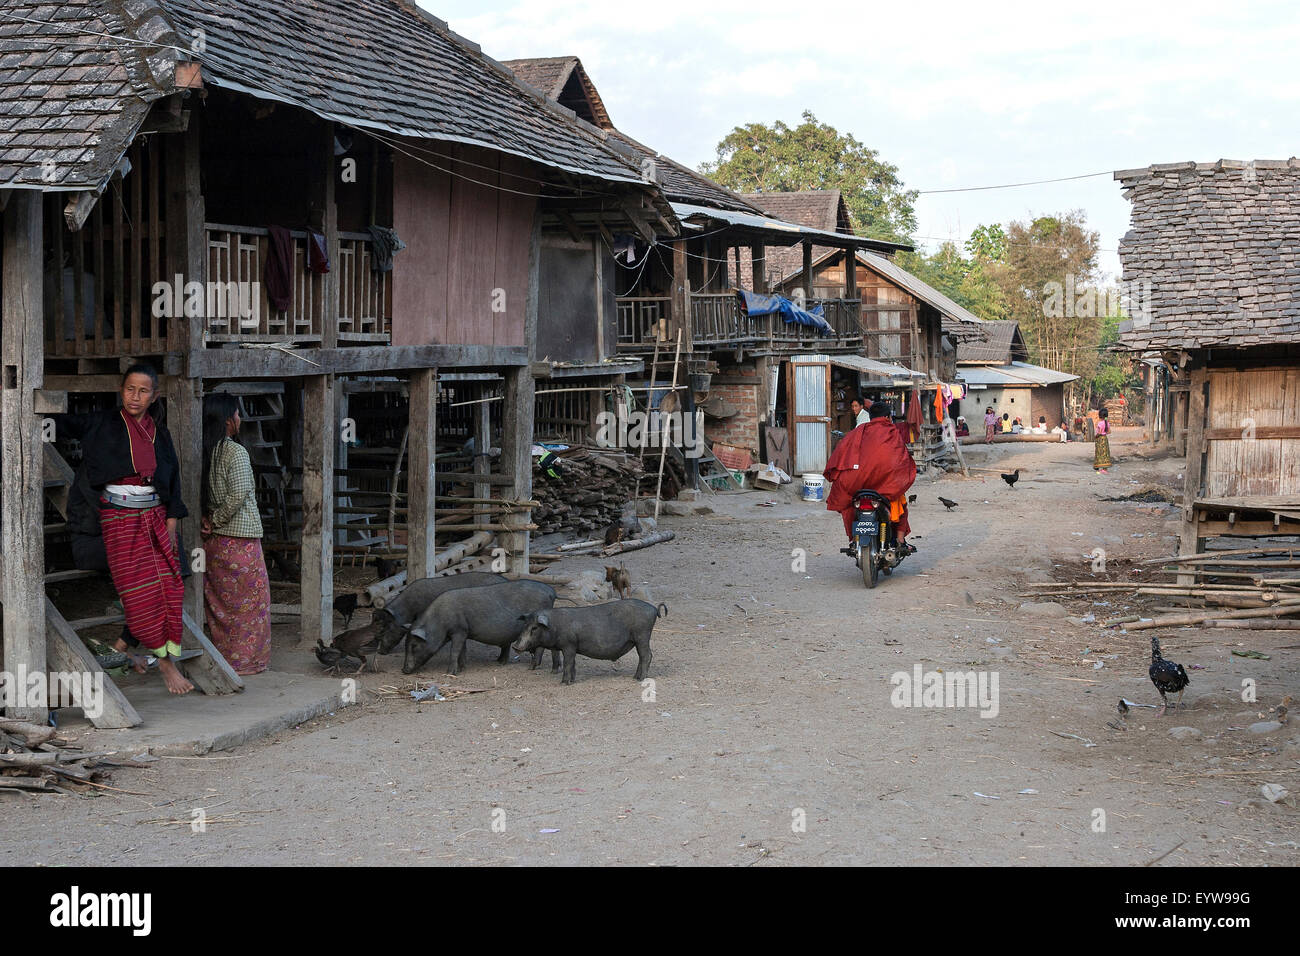 Palaung village, with humans and pigs, near Kyaing Tong, Shan State Golden Triangle, Myanmar - Stock Image